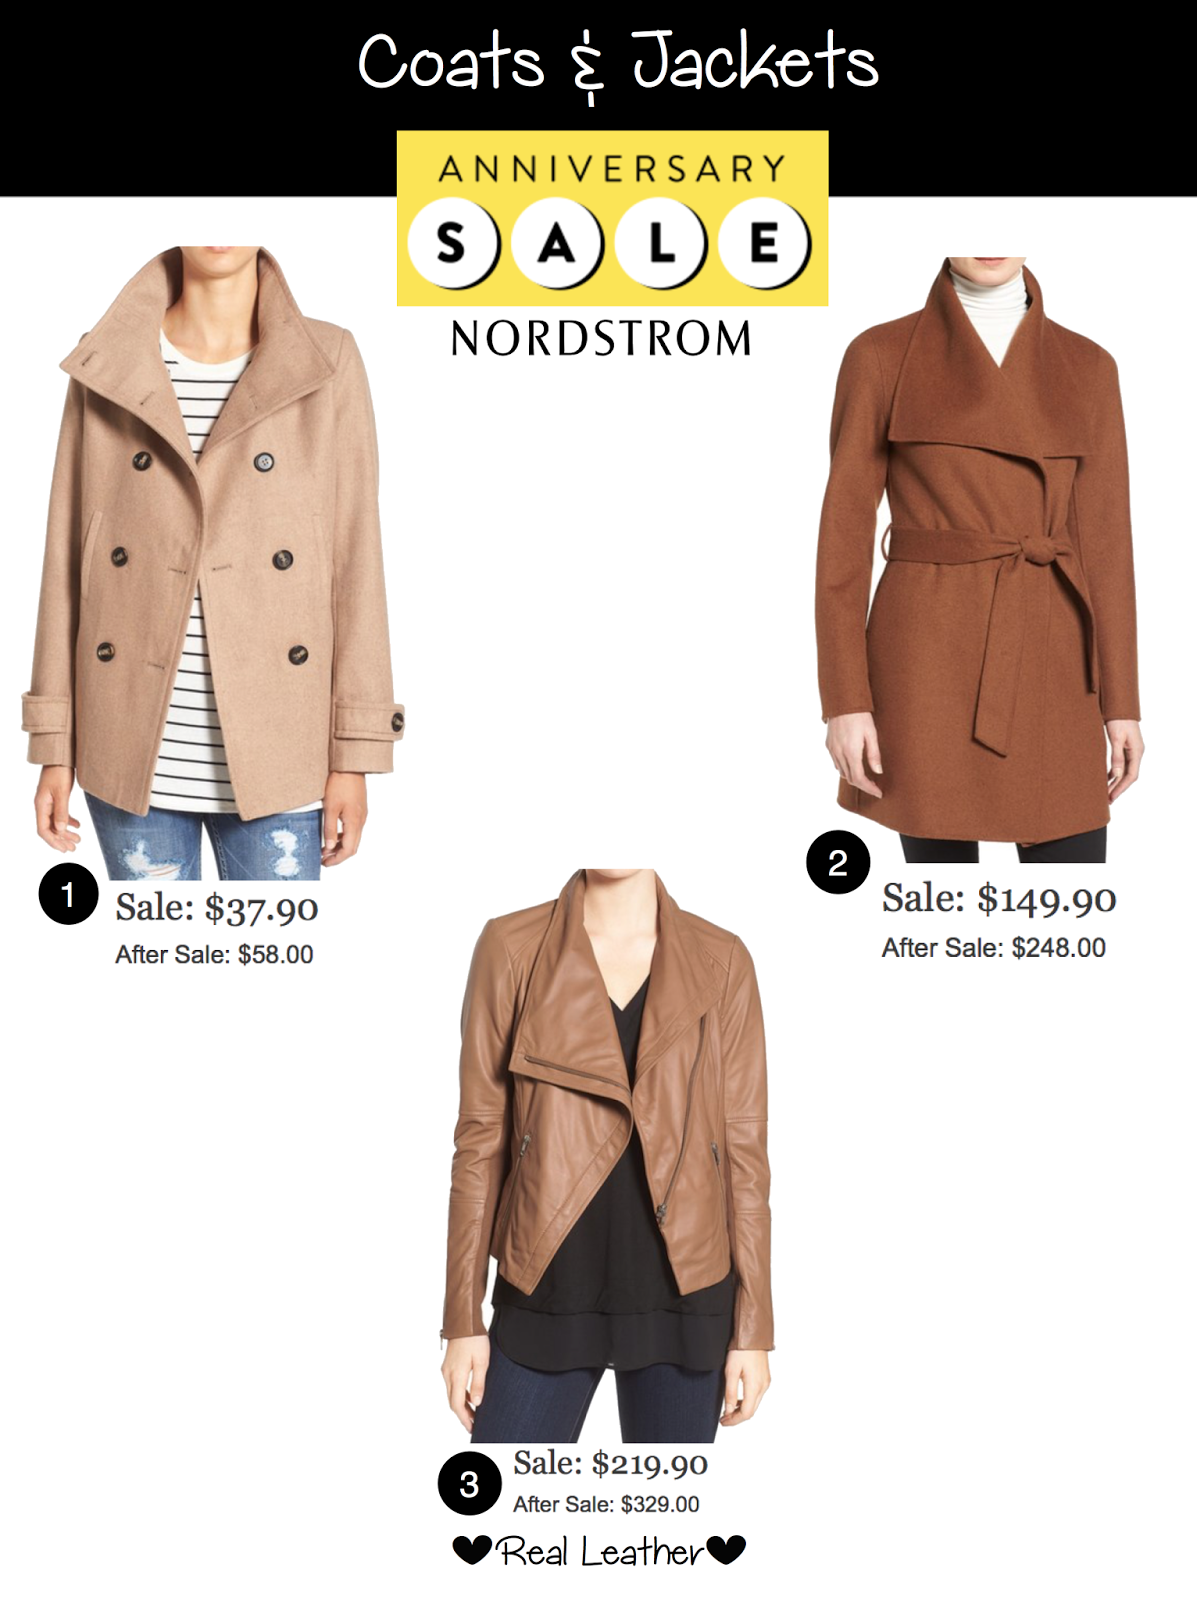 #nsale, Nsale 2016, tory burch boots Nsale, nordstrom anniversary sale 2016, best nordstrom anniversary sale items, fall items nordstrom anniversary sale, boots Nsale, how to shop Nordstrom anniversary sale, best buys Nordstrom anniversary sale, Fall sweater Nordstrom anniversary sale, emily gemma, the sweetest thing blog